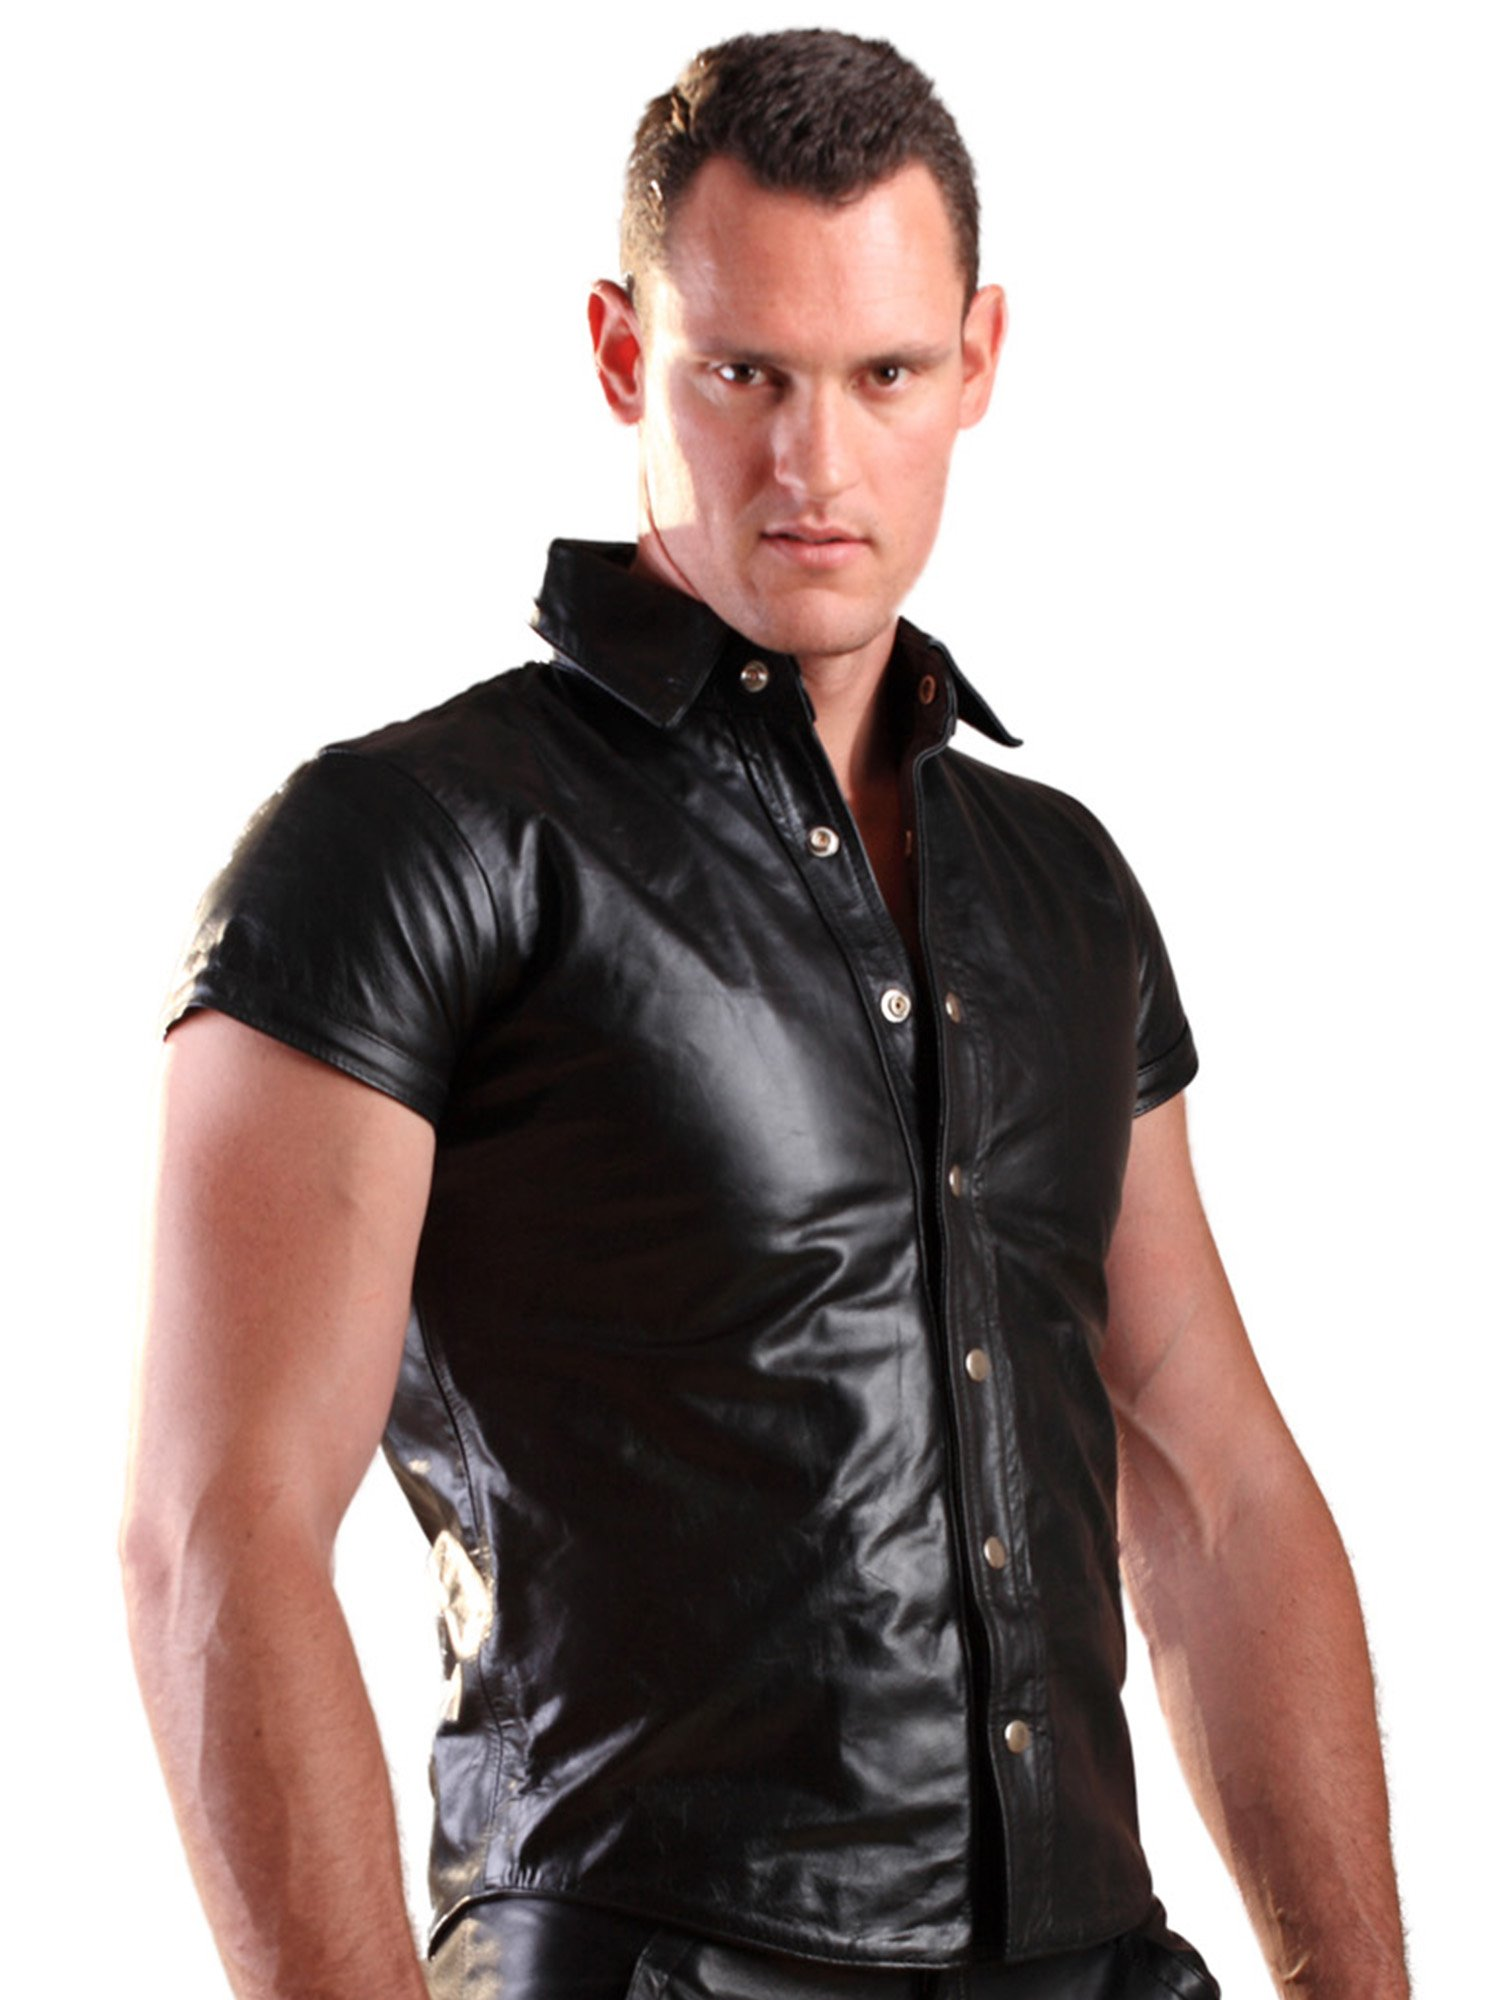 Honour Men's Shirt in Leather Black size S